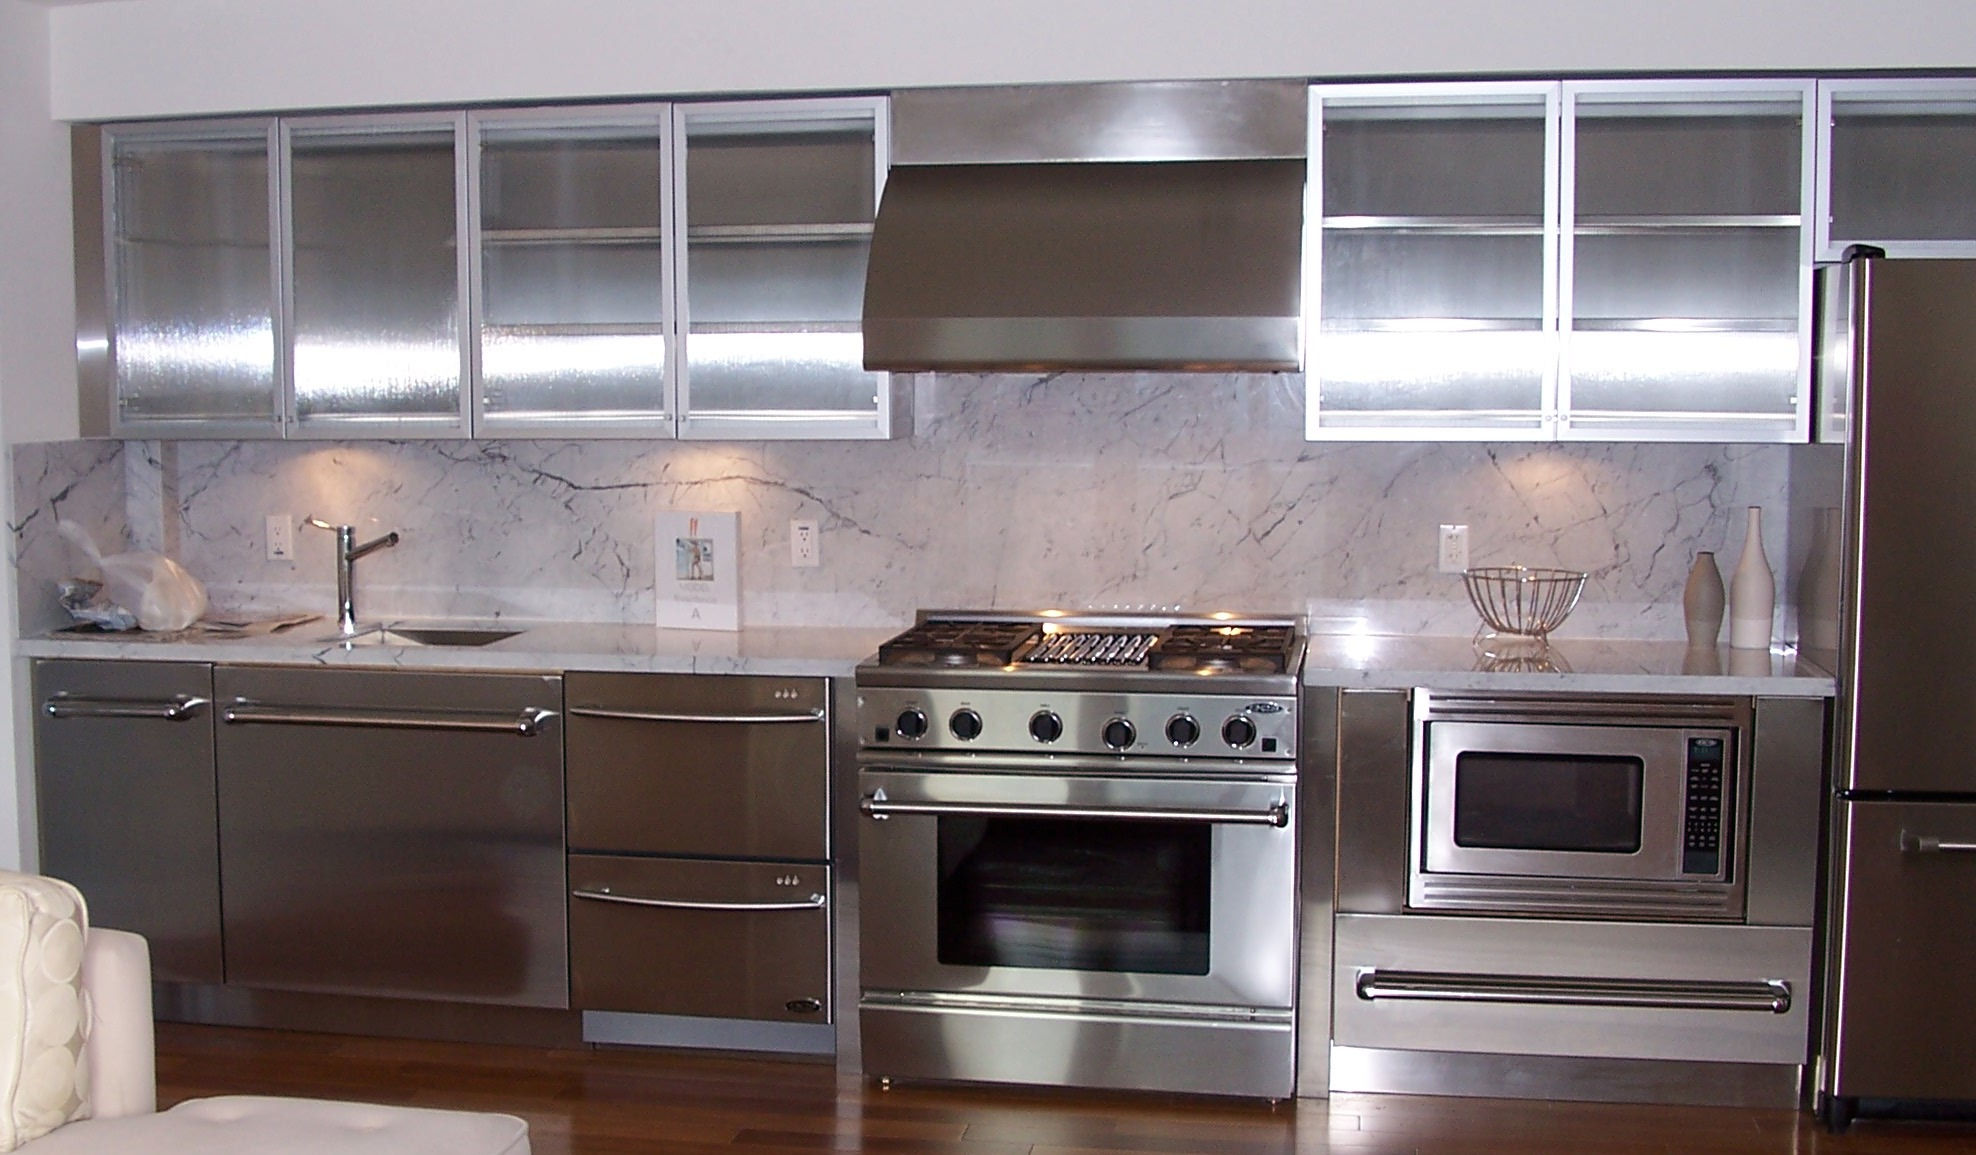 stainless steel kitchen cabinet design stainless steel kitchen cabinets steelkitchen 8242